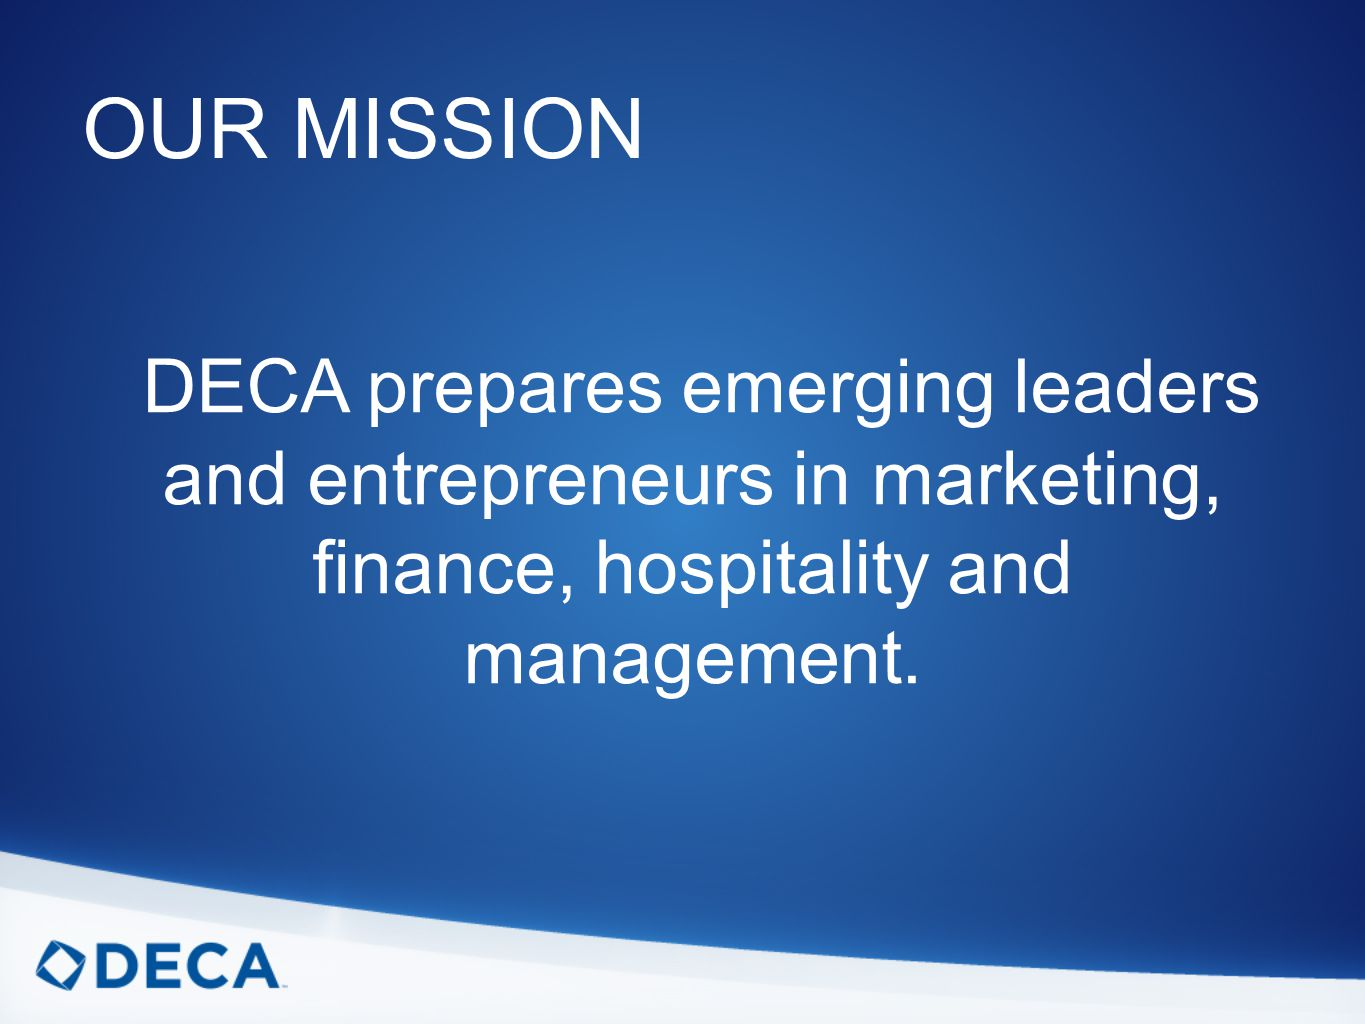 OUR MISSION DECA prepares emerging leaders and entrepreneurs in marketing, finance, hospitality and management.